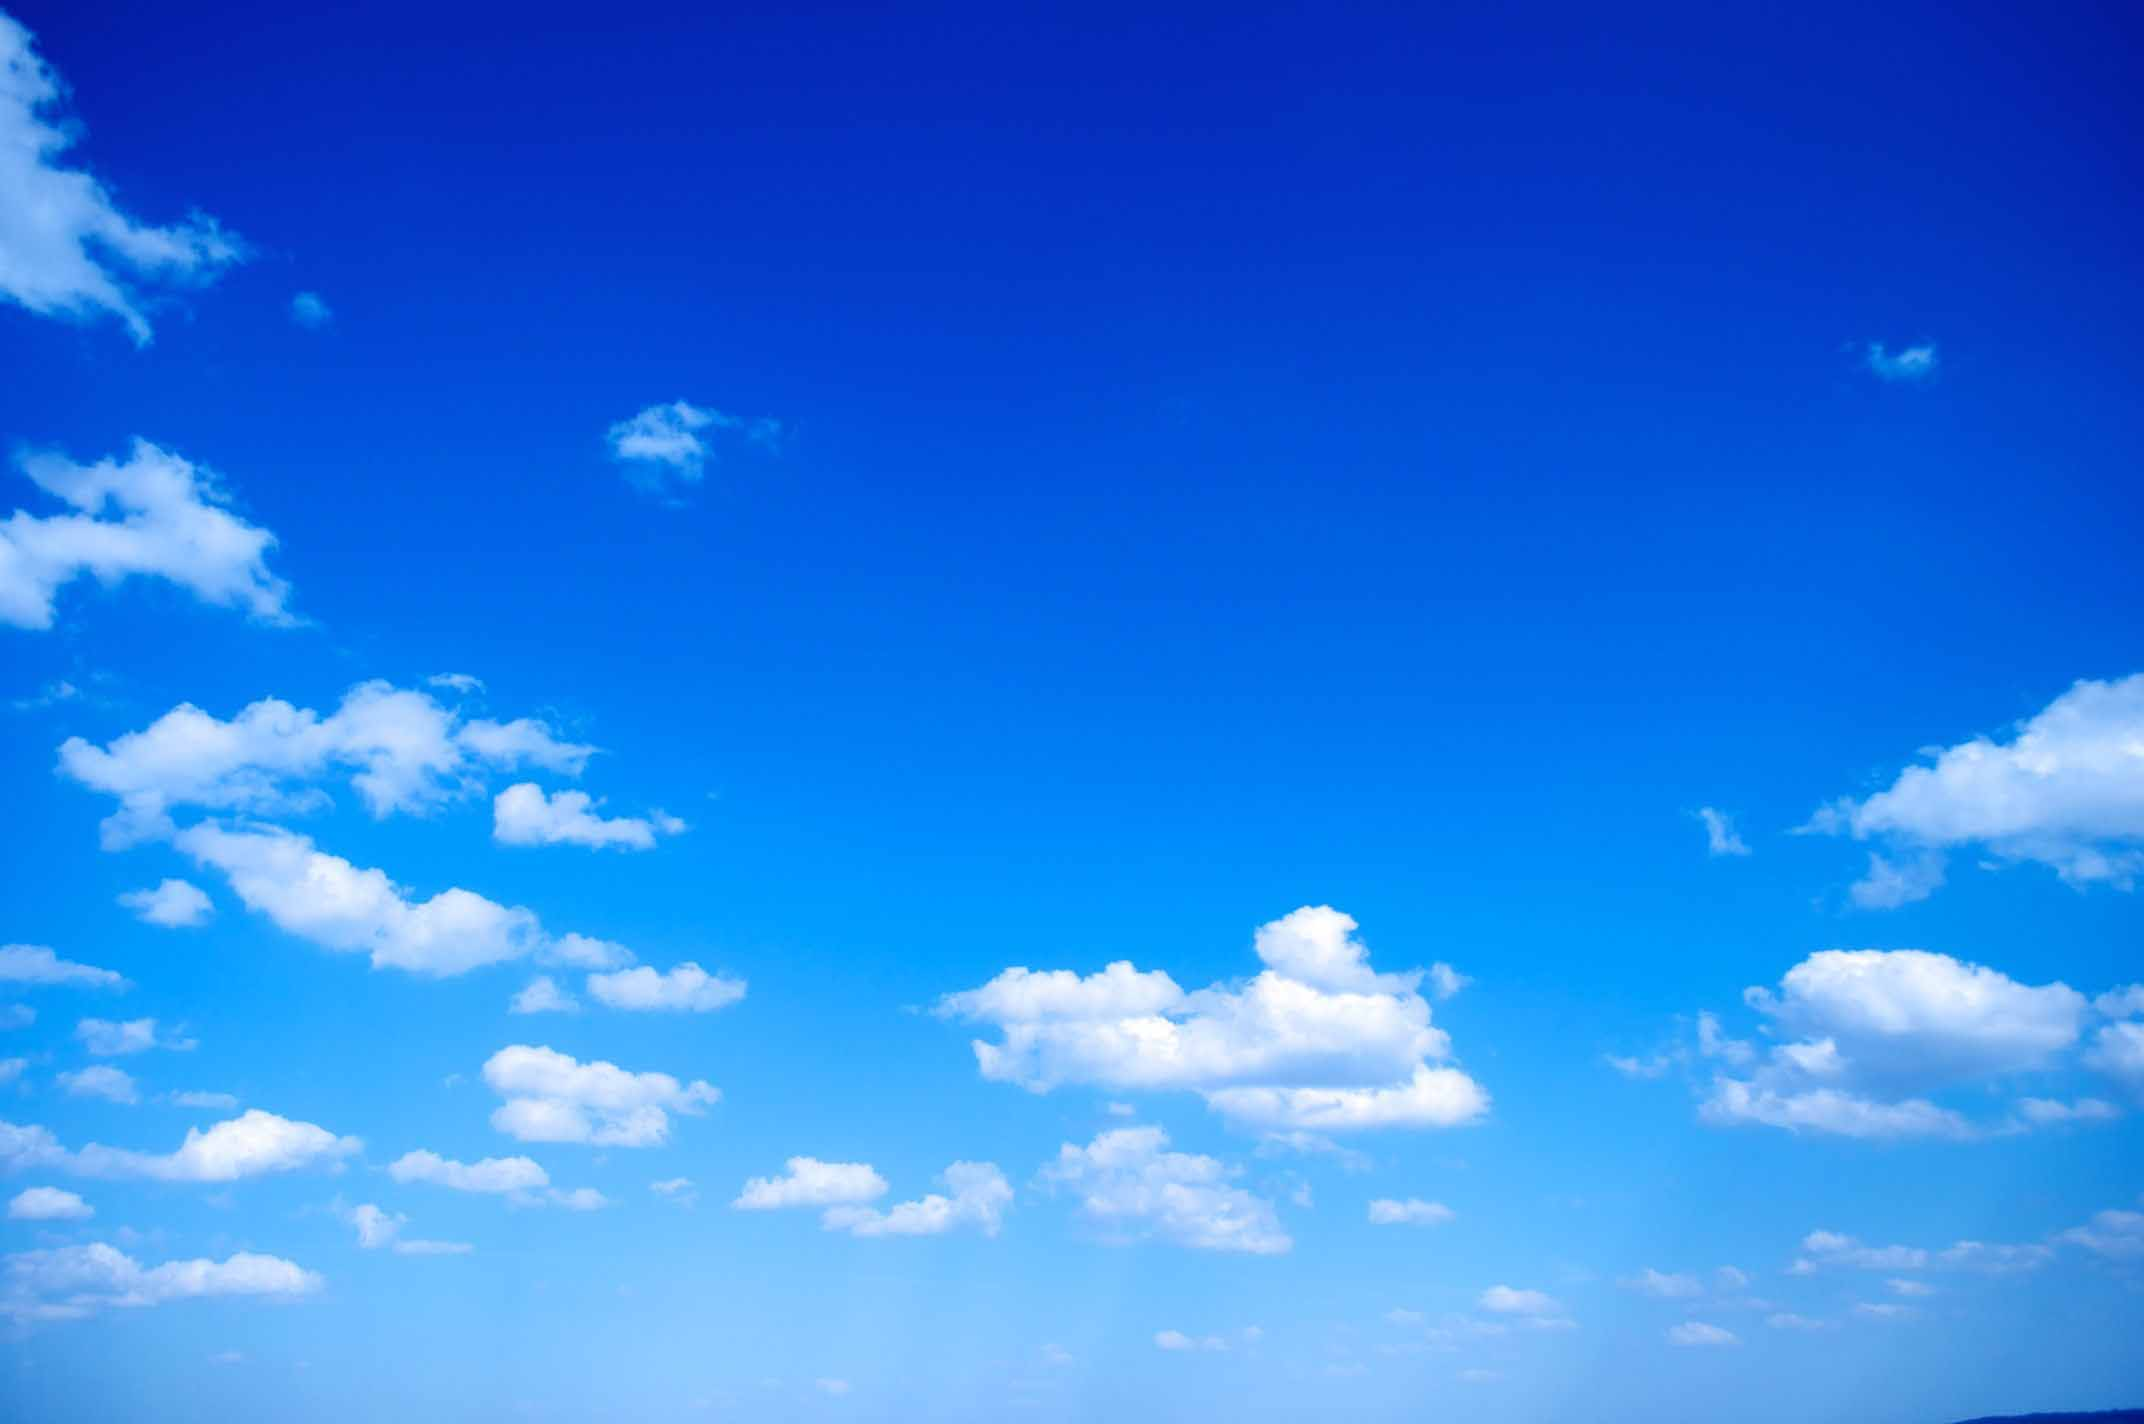 Blue Sky Hd HD Wallpaper, Backgrounds Image